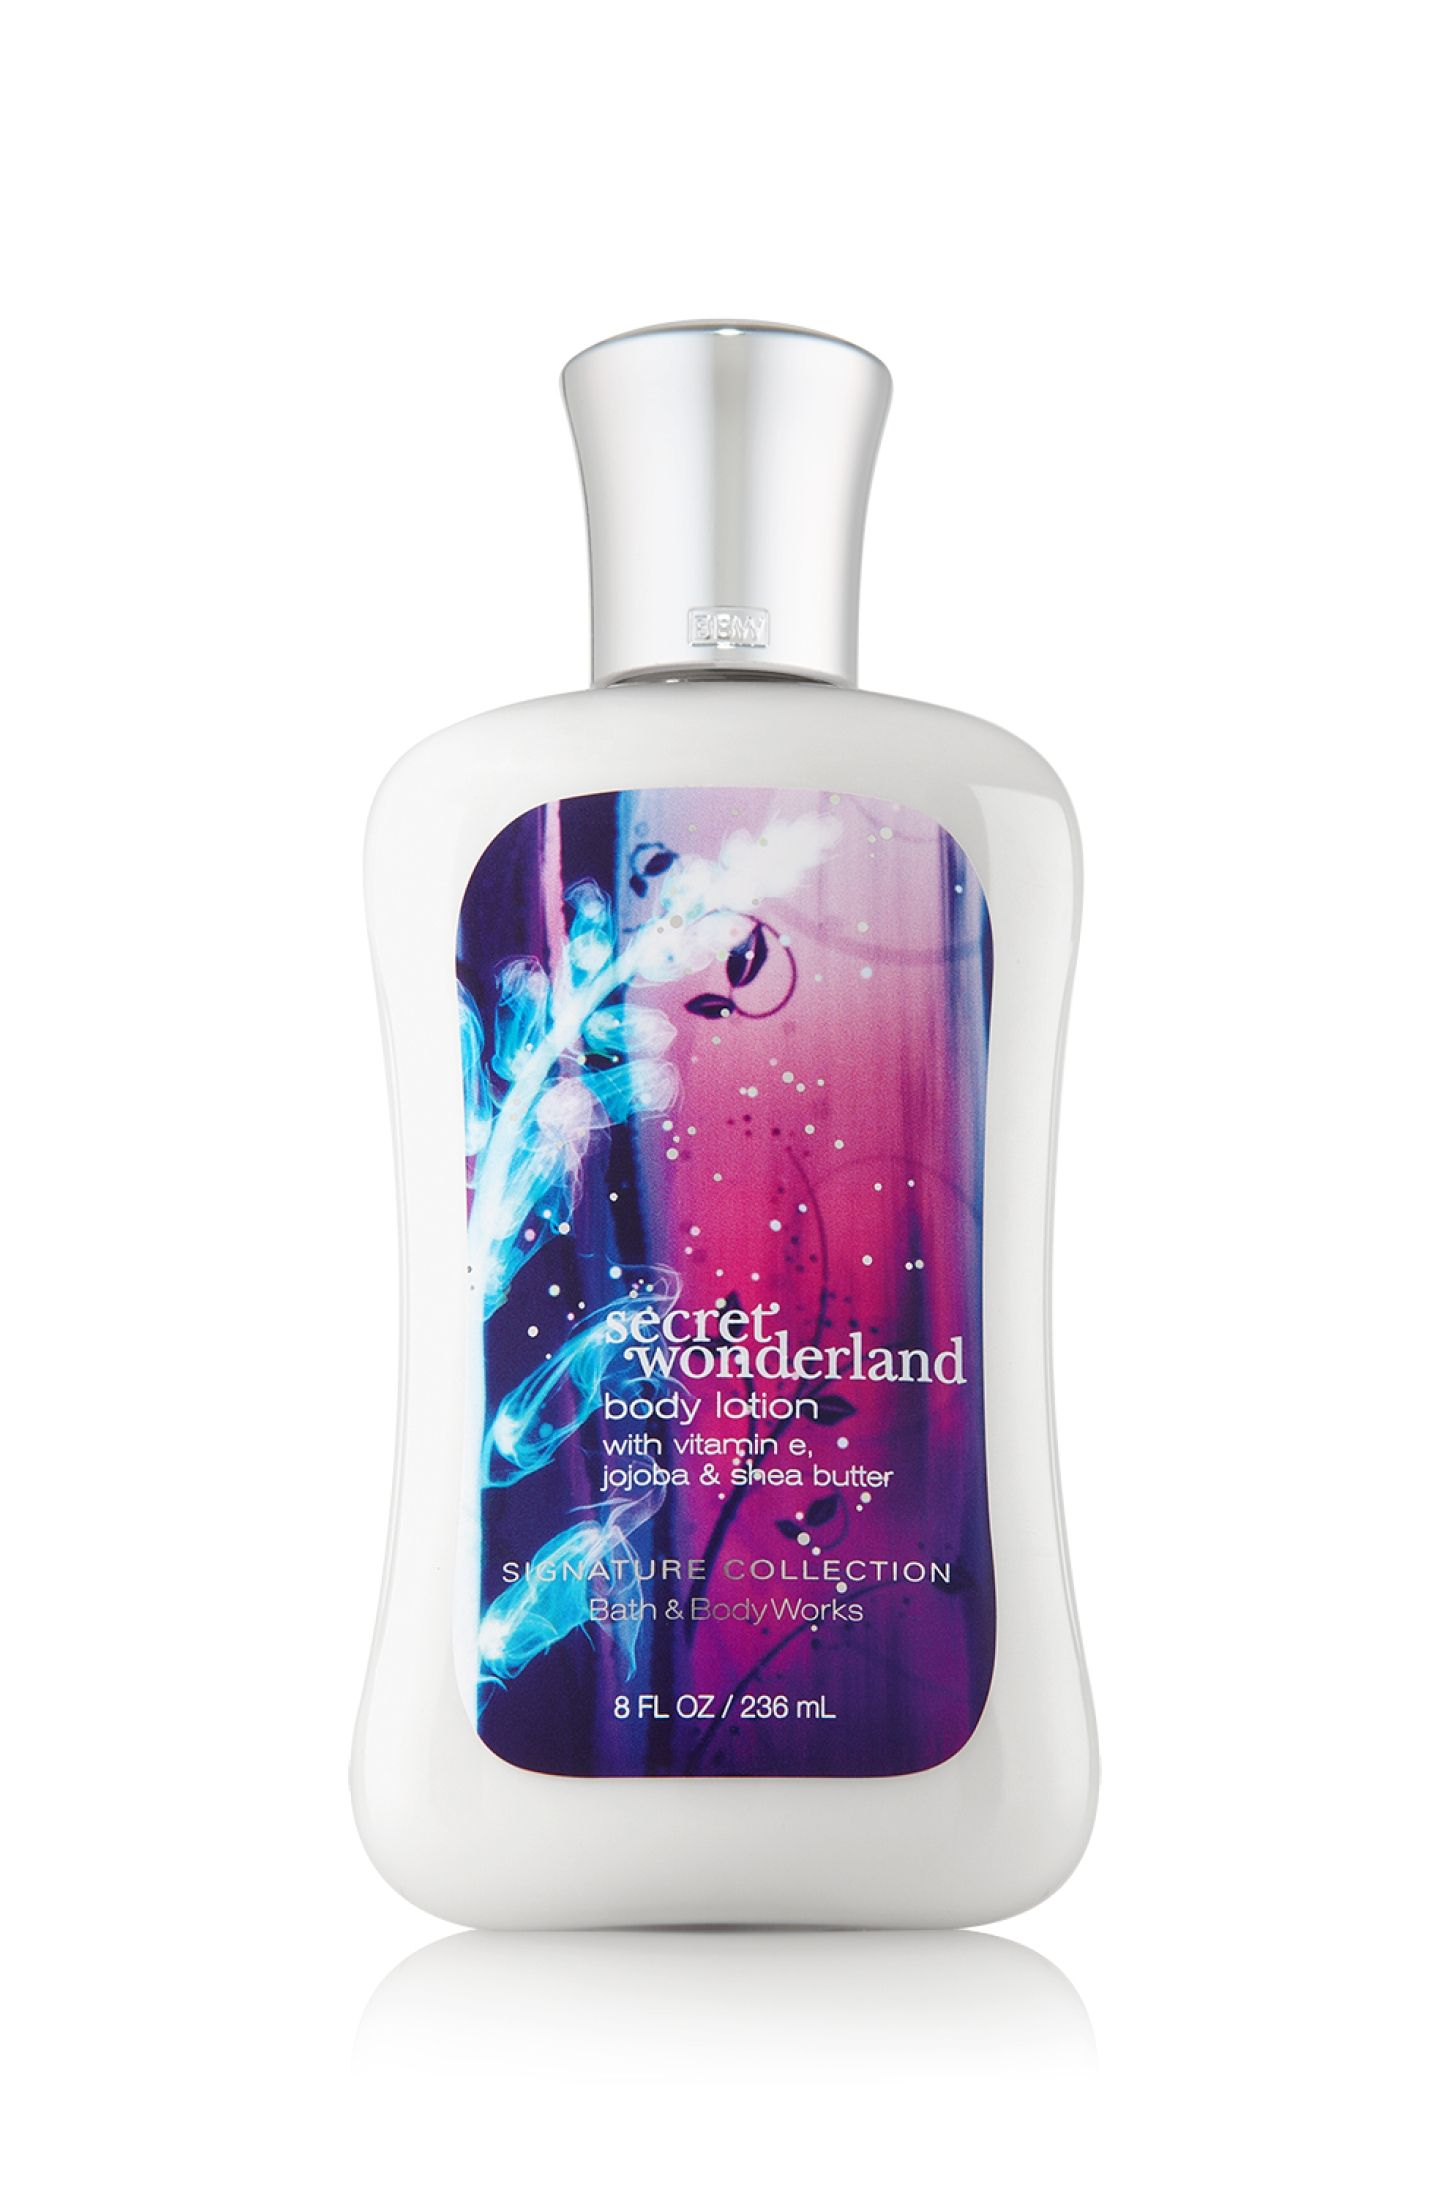 Bath and body works holiday scents - Secret Wonderland Body Lotion Signature Collection Bath Body Works